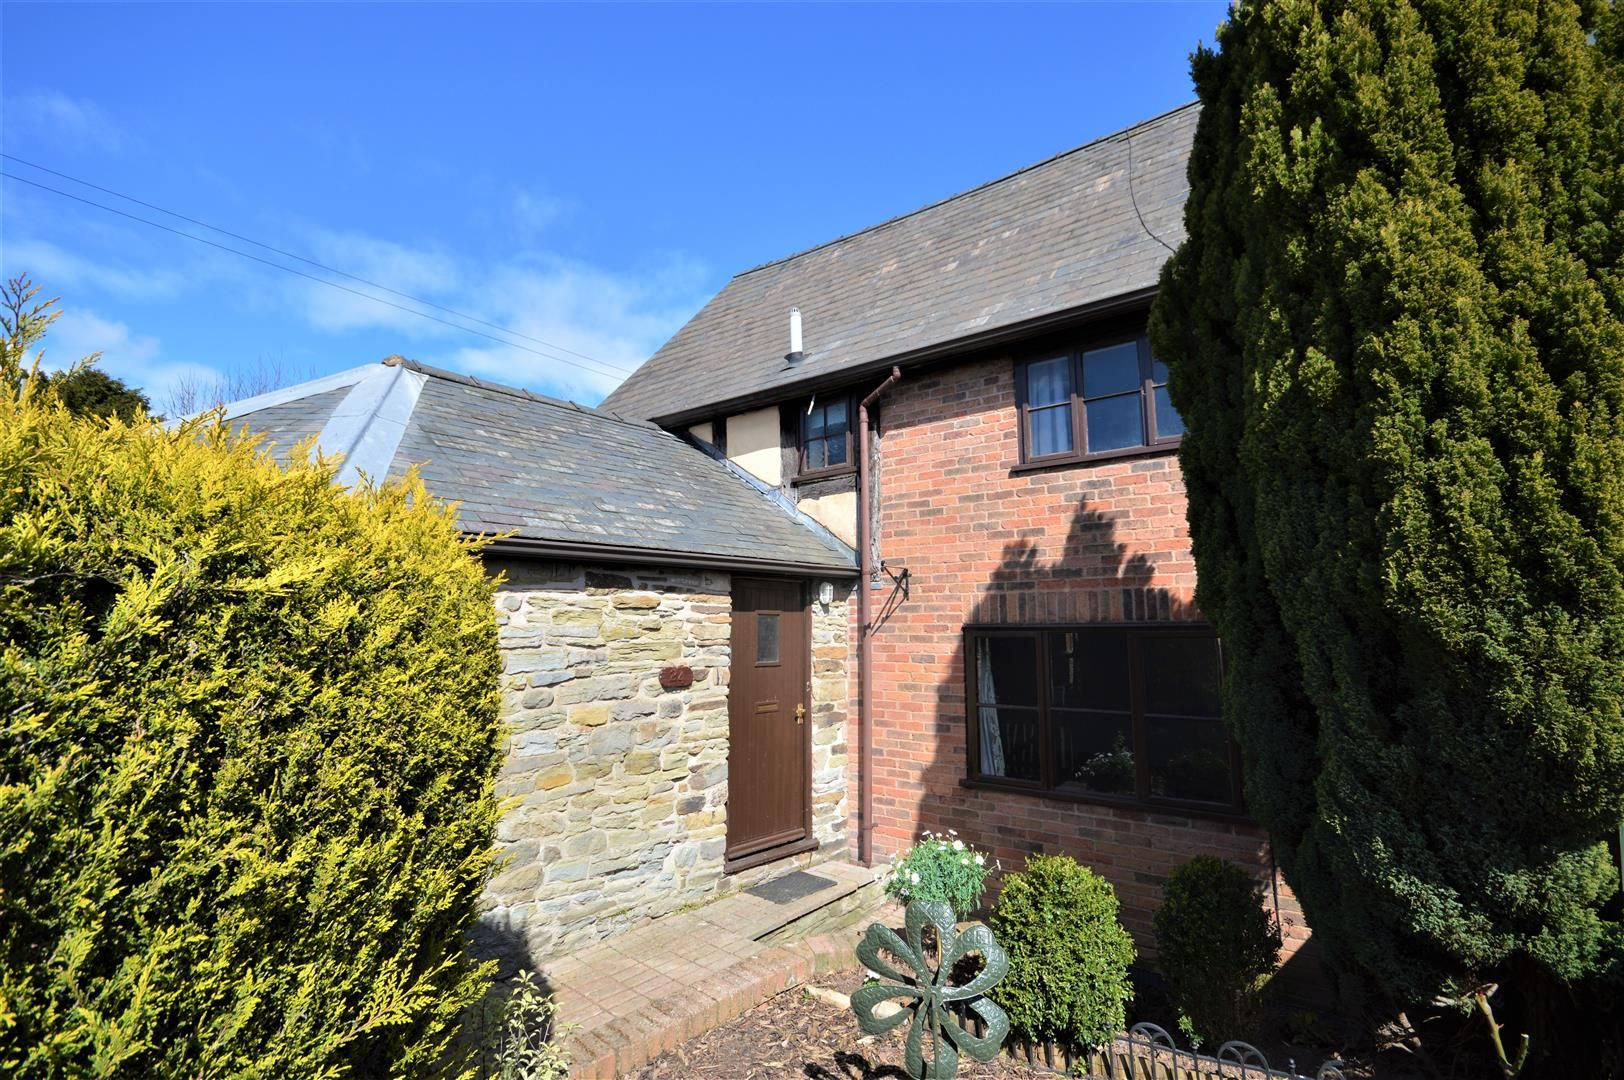 3 bed barn conversion for sale in Shobdon, HR6